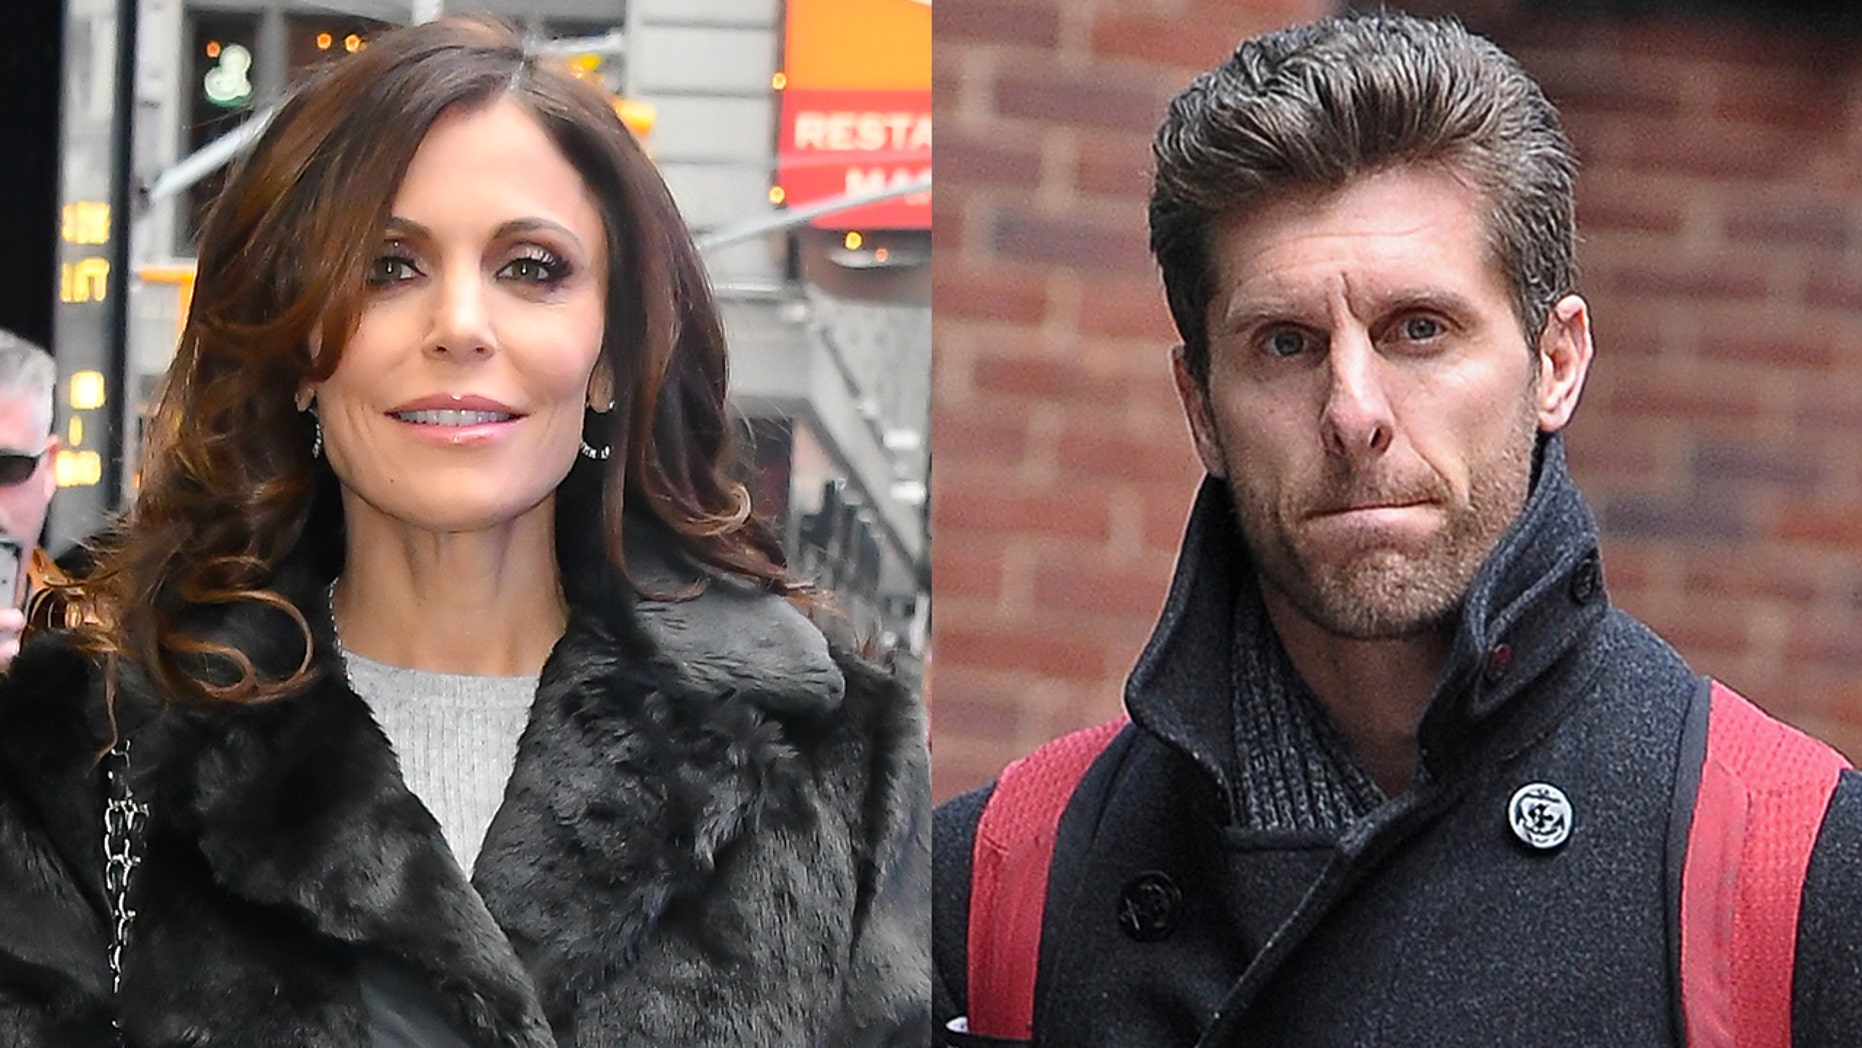 Bethenny Frankel gave insight into what her past relationship with John Hoppy was like.